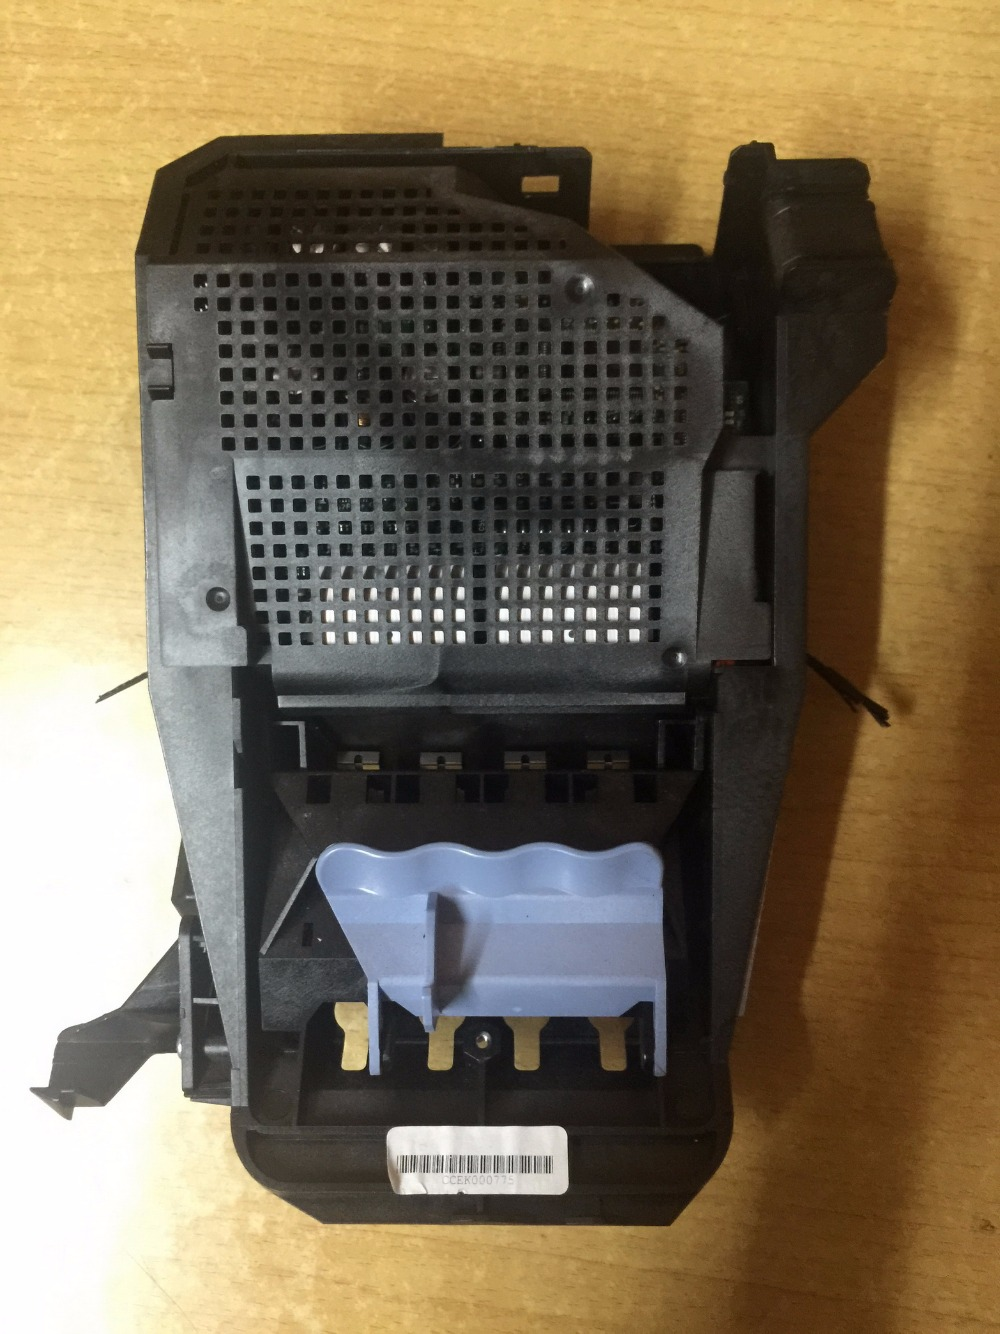 Pulloed out original FOR HP DesignJet Printer 500 800 Printhead carriage assembly C7769-69376 /C7769-69376 1piece carriage assembly for hp designjet 500 510 plotter c7769 69376